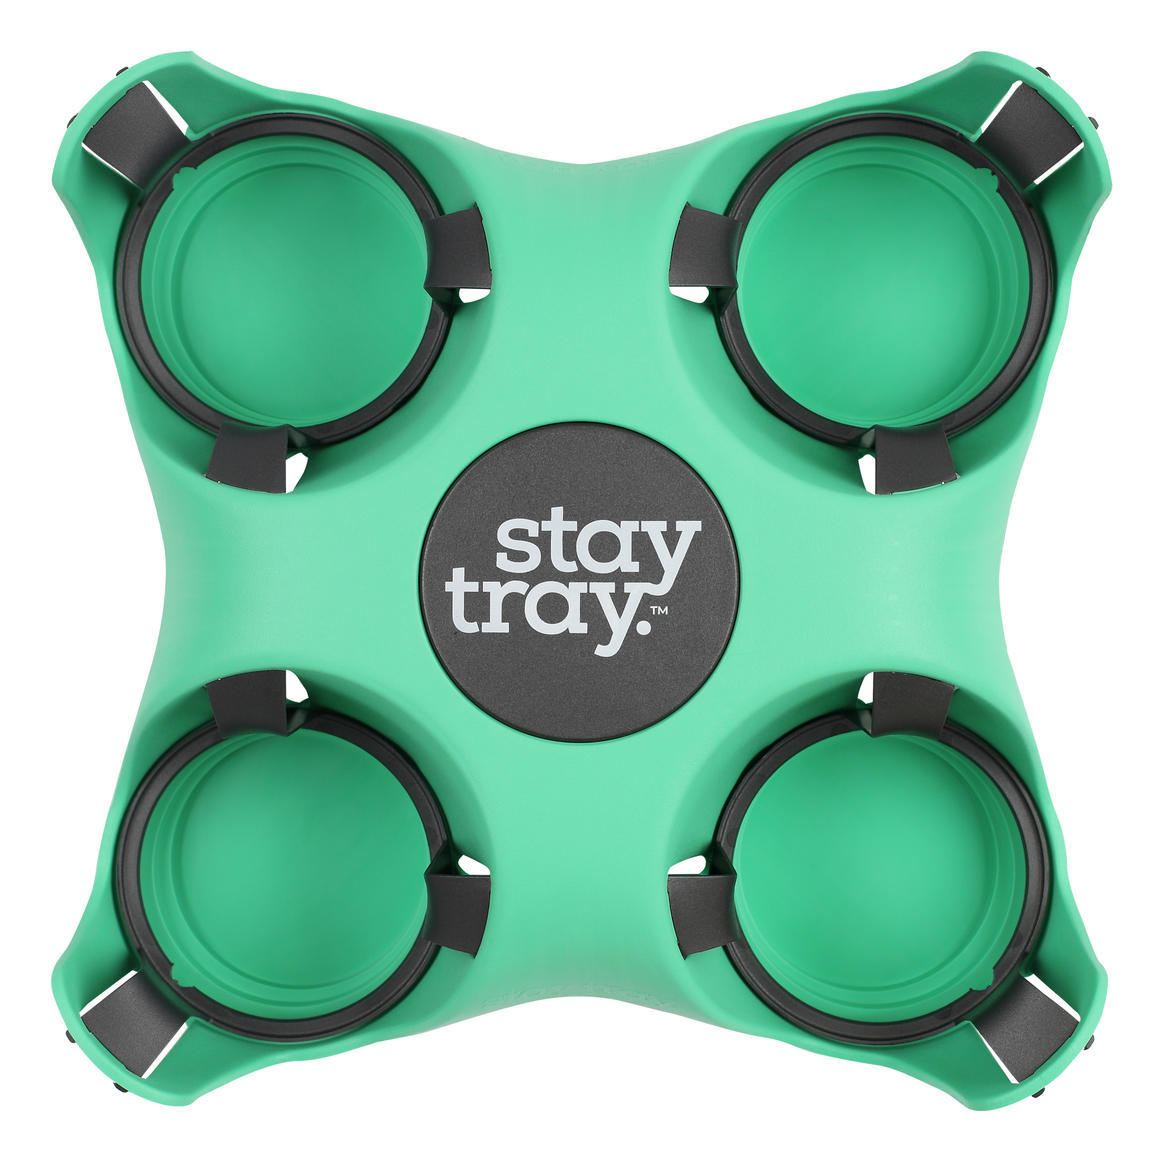 Stay tray Four Cup Holder Minty   Trada Marketplace